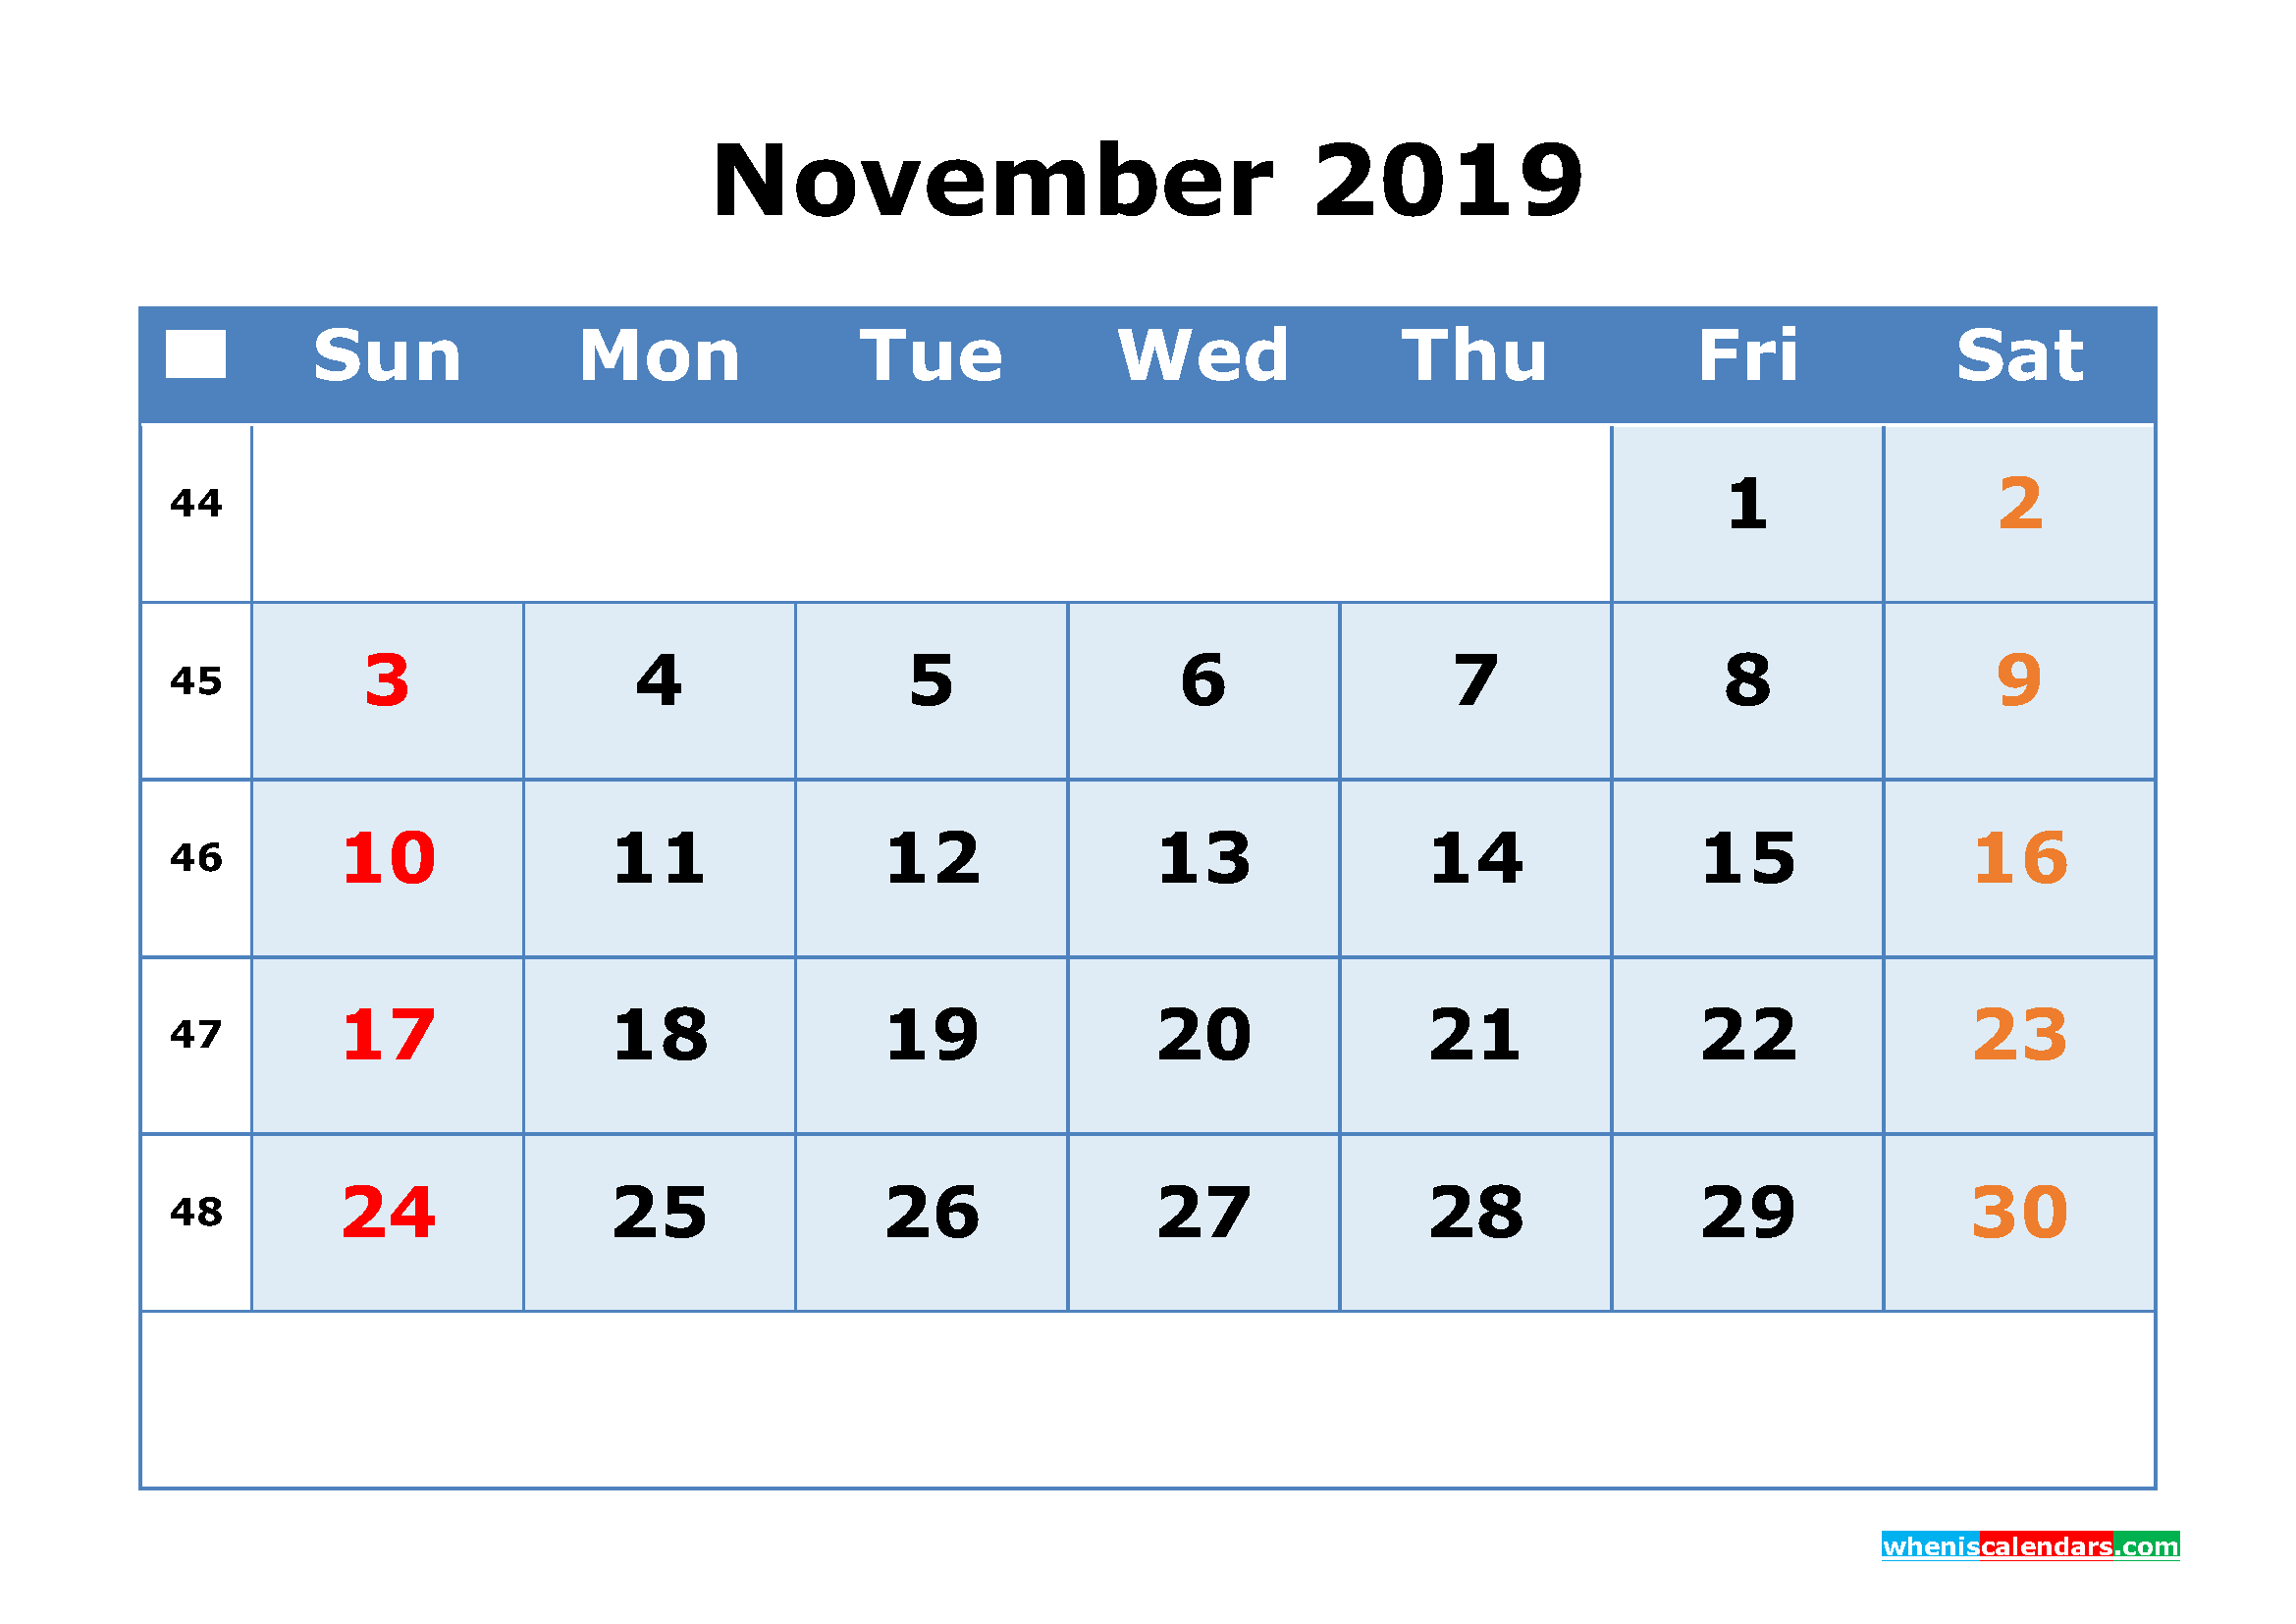 November 2019 Printable Calendar with Week Numbers as PDF, JPG